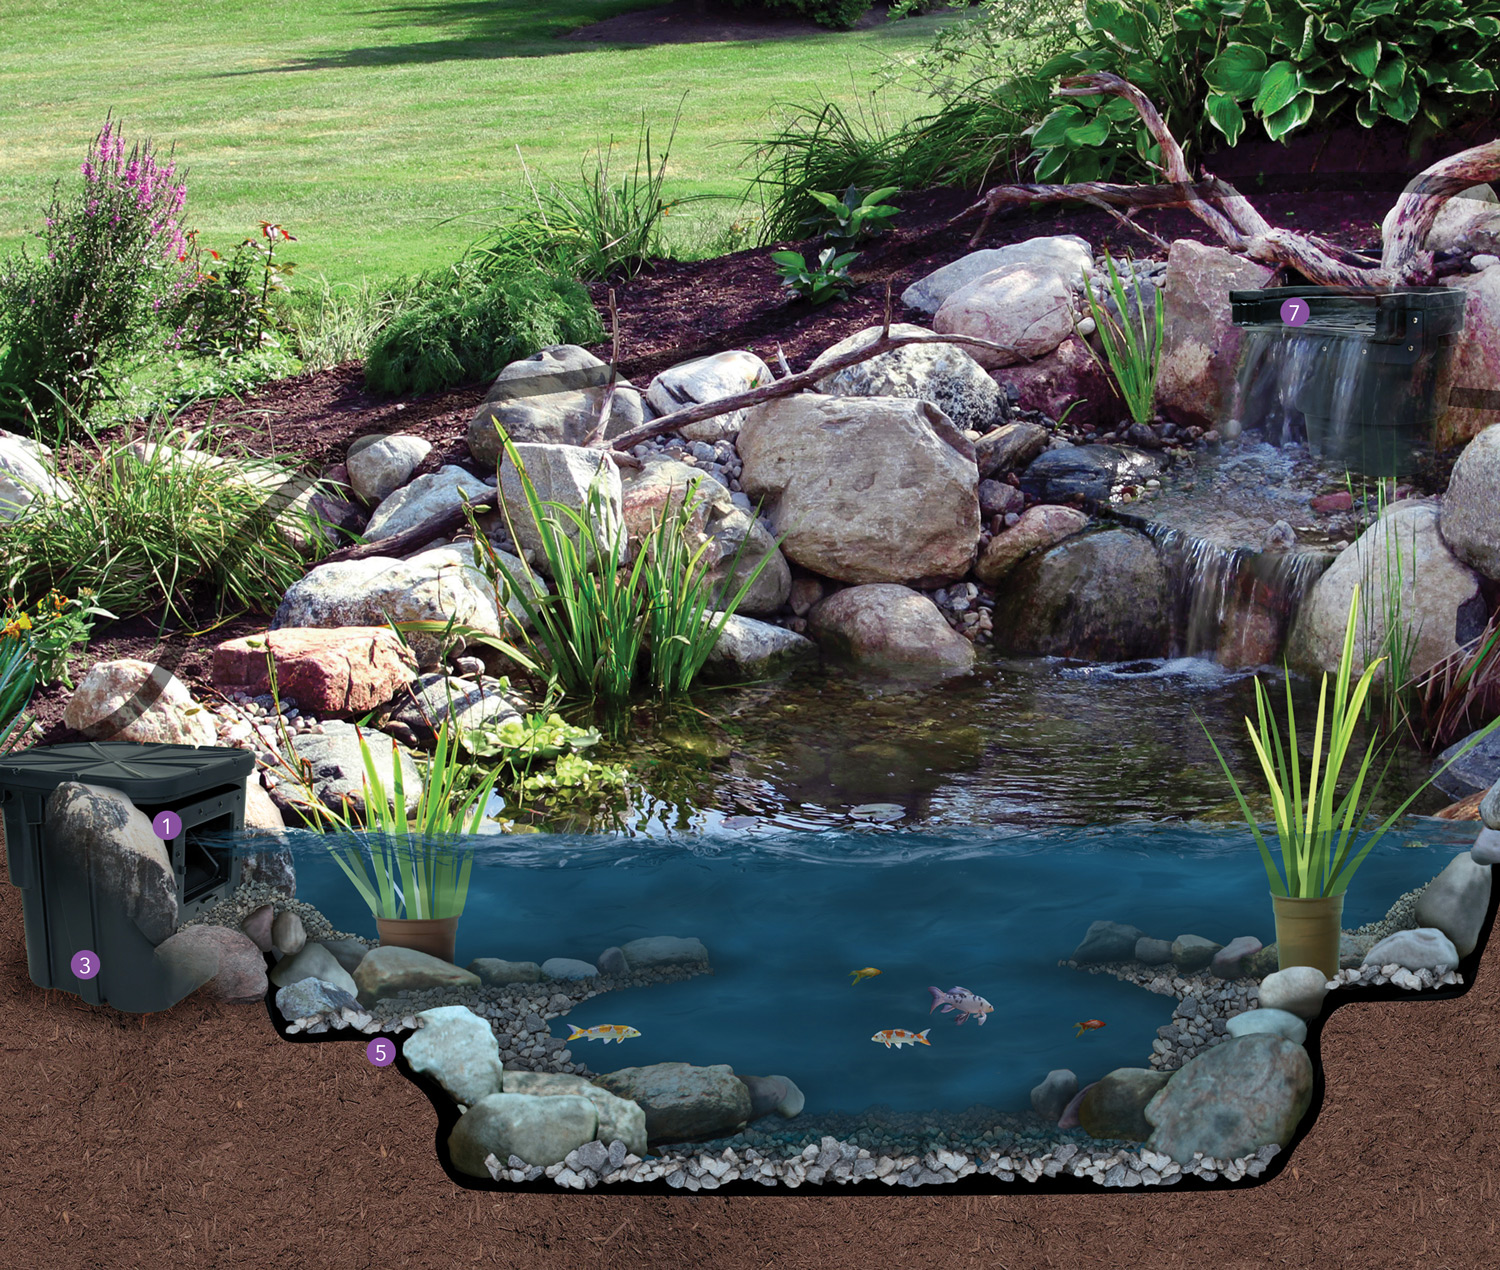 Water garden smartrain for Garden with a pond